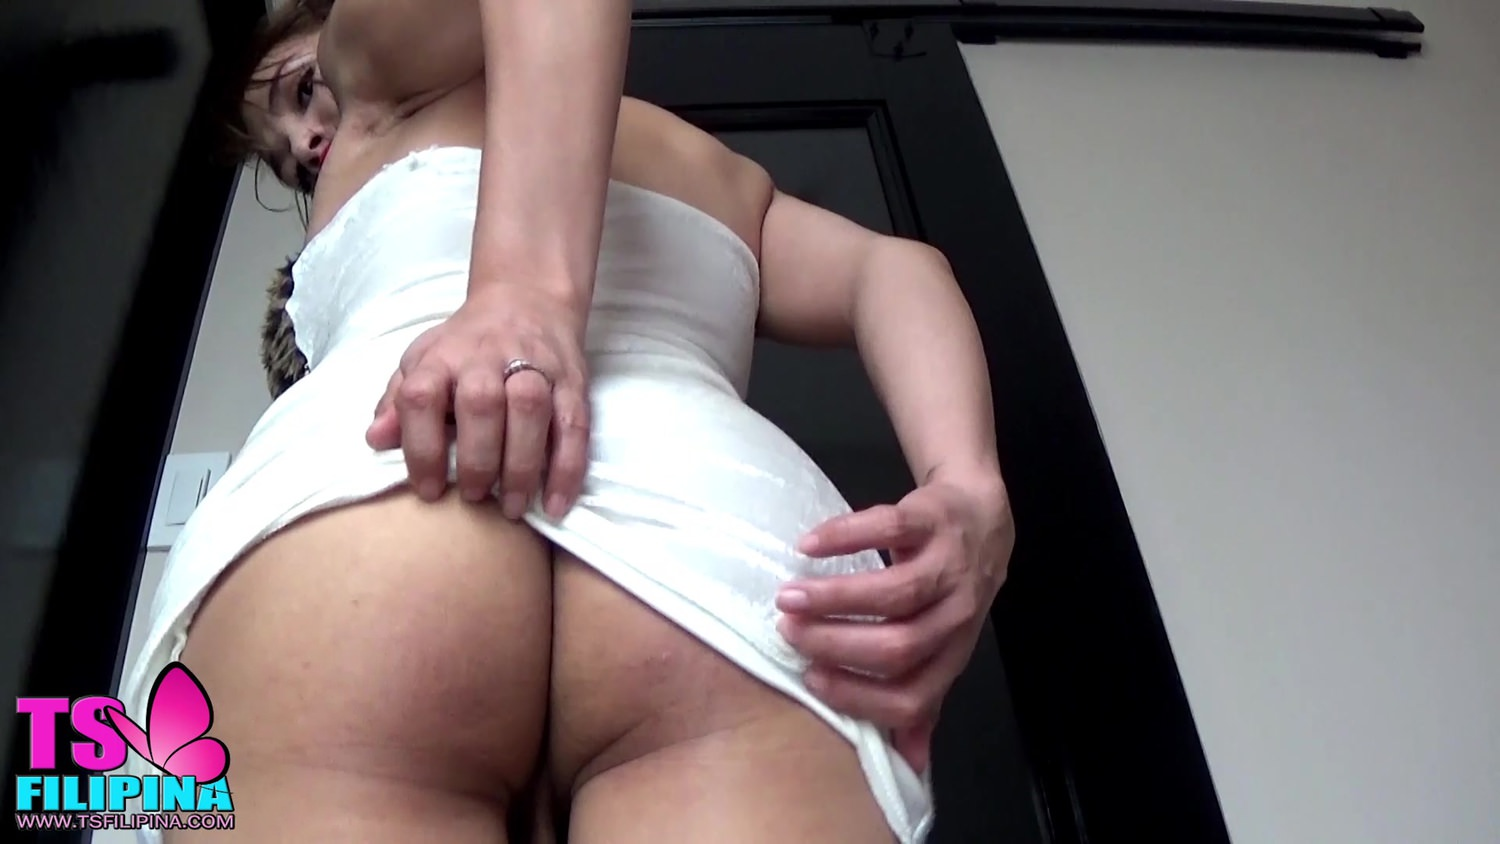 bus brunette asiatique: ts filipina busty brunette asian shemale